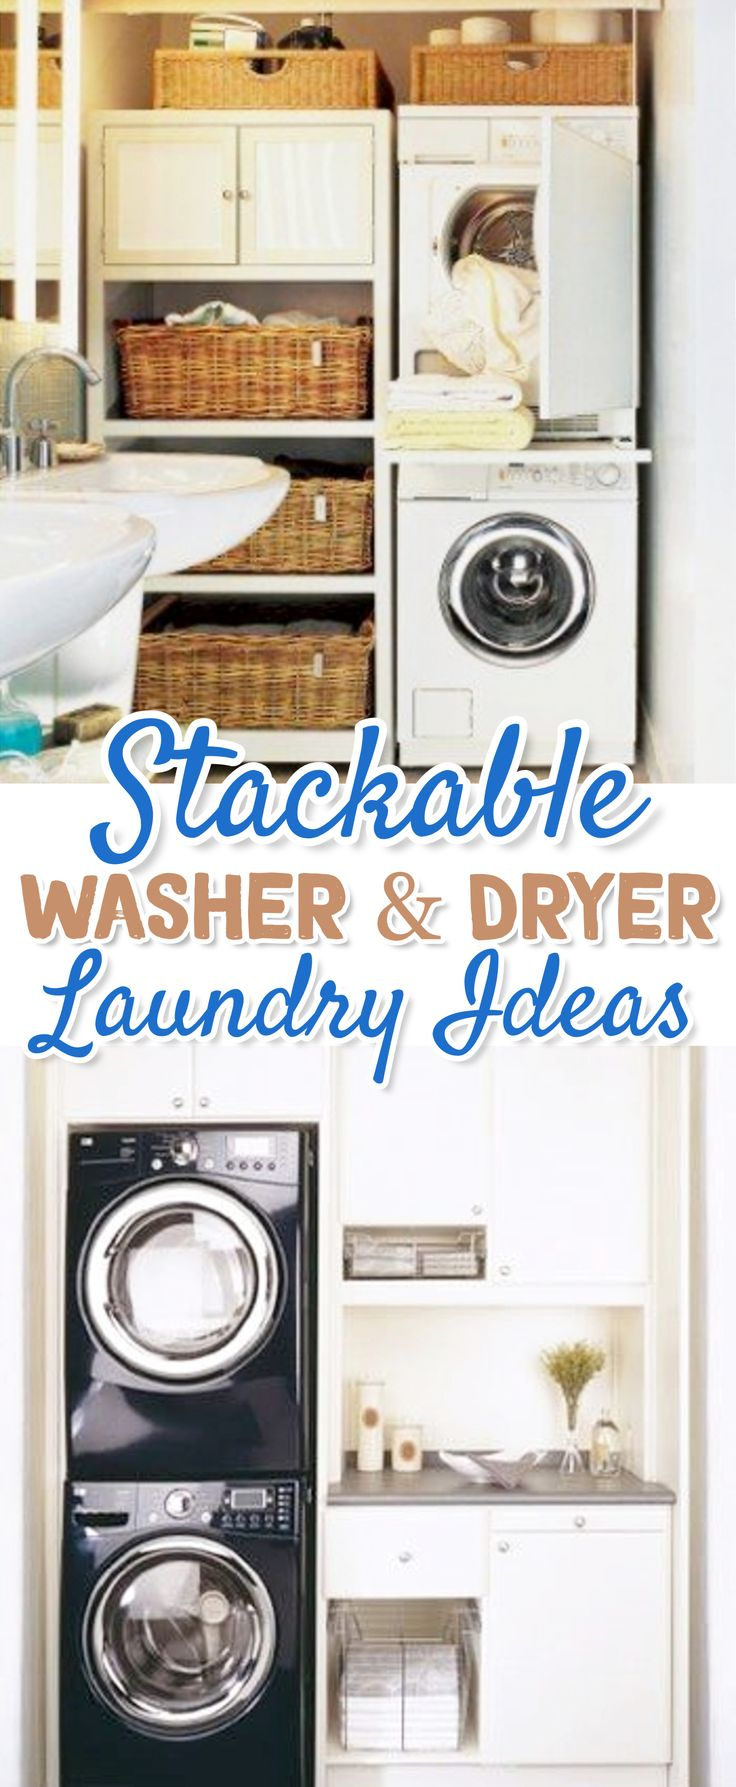 small laundry room ideas - stacking washer and dryer in small laundry area